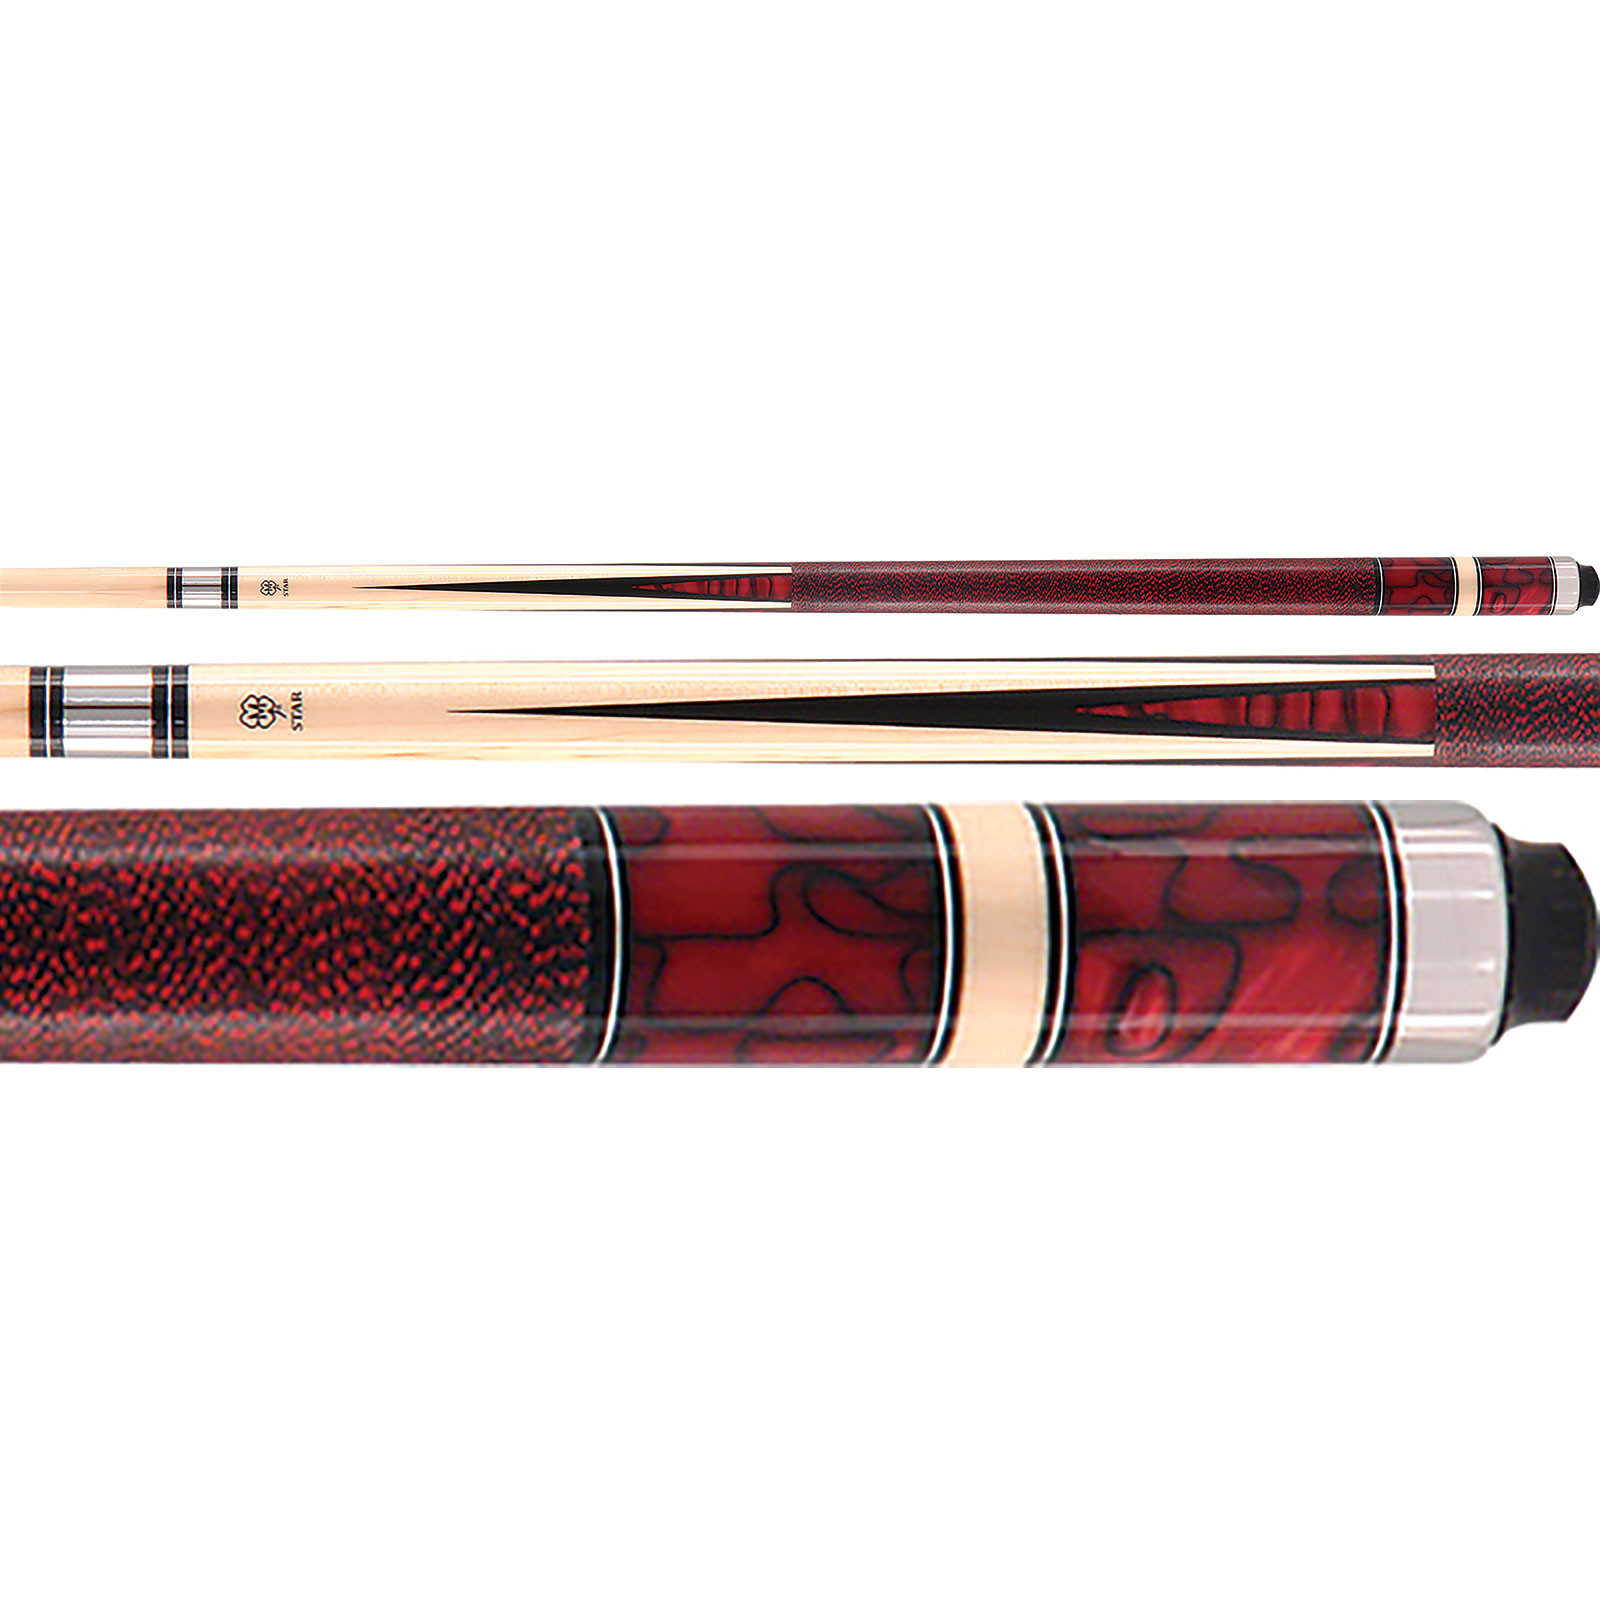 McDermott Star S23 Red Pearl Billiards Pool Cue Stick